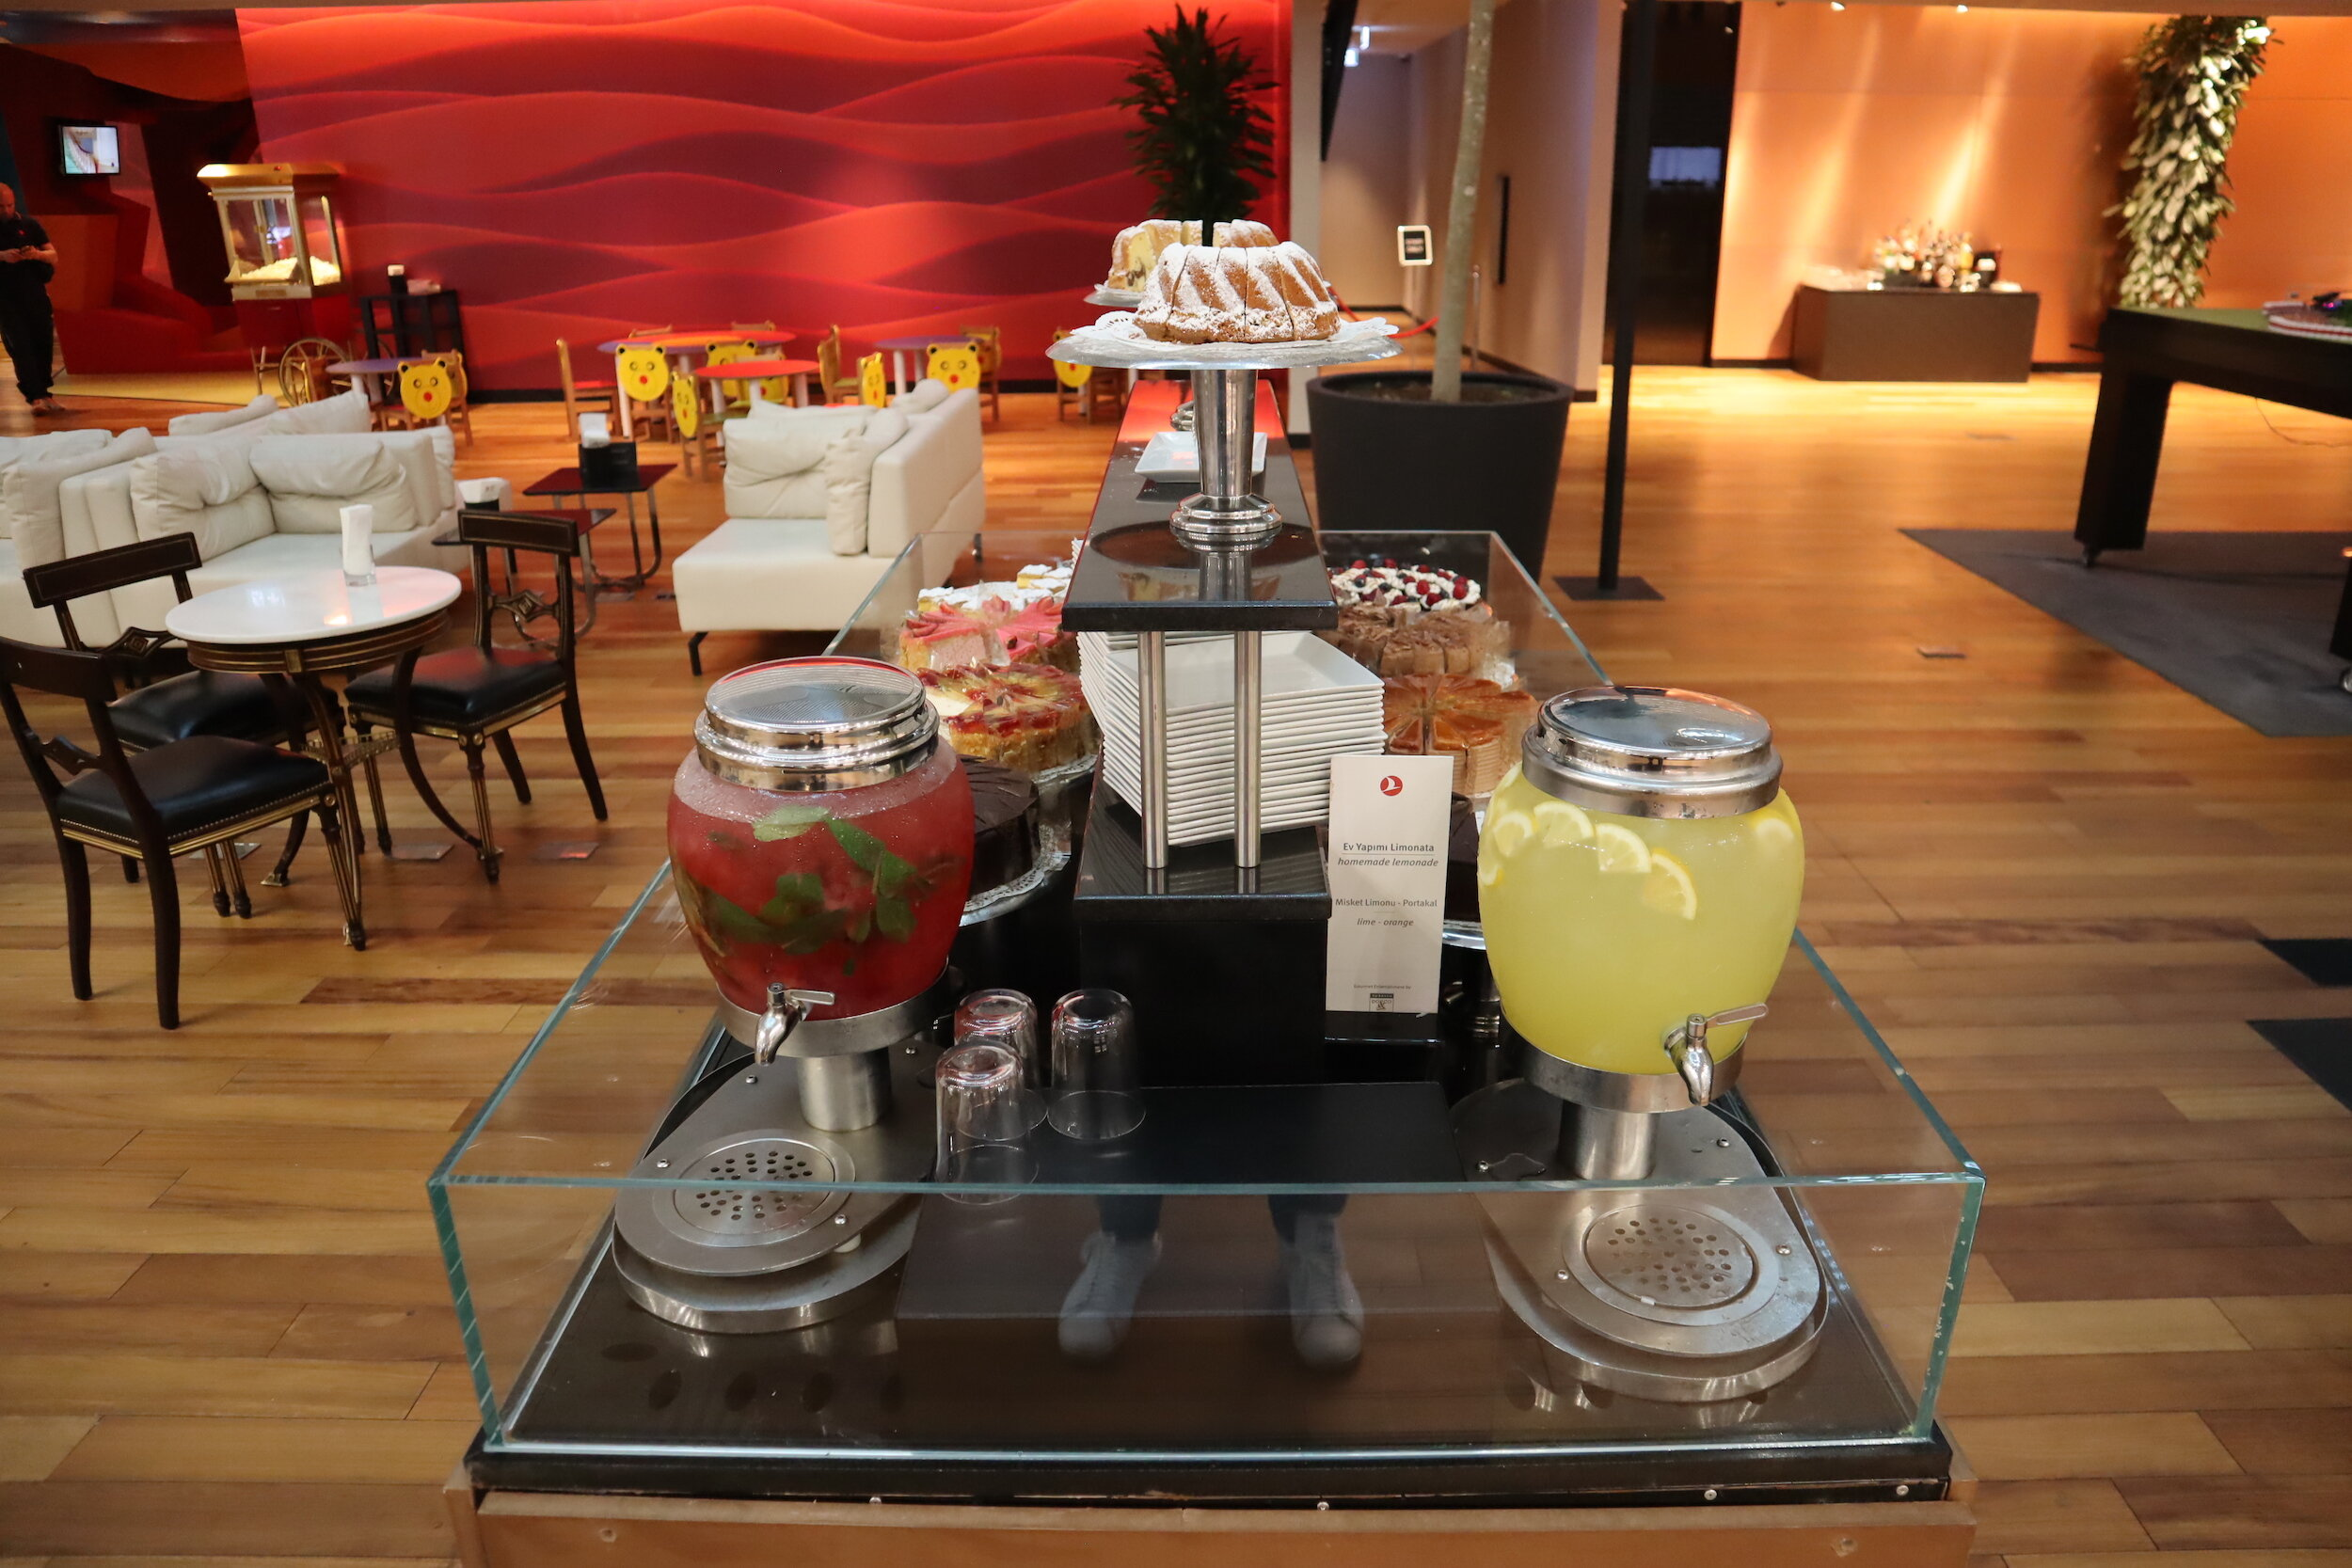 Turkish Airlines Business Lounge Istanbul – Baklava and juices